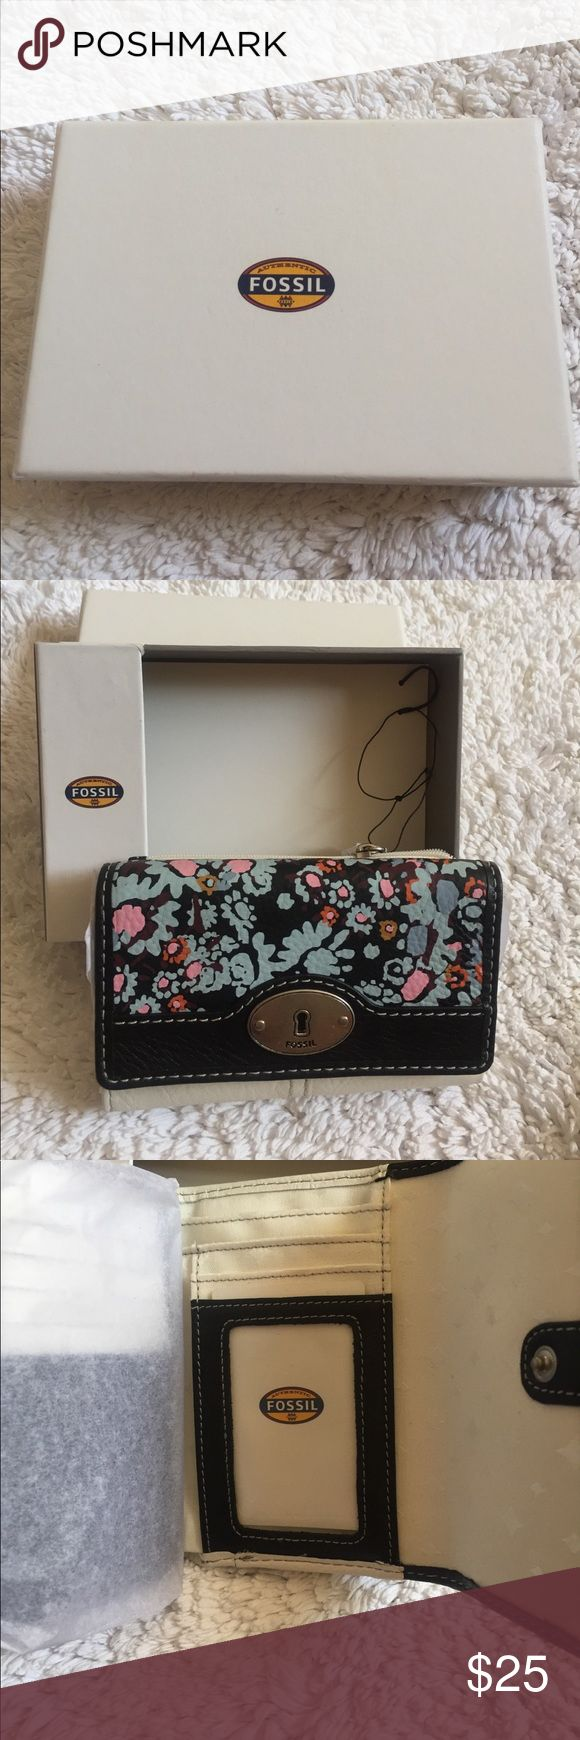 Fossil wallet women's New fossil Fossil Bags Wallets